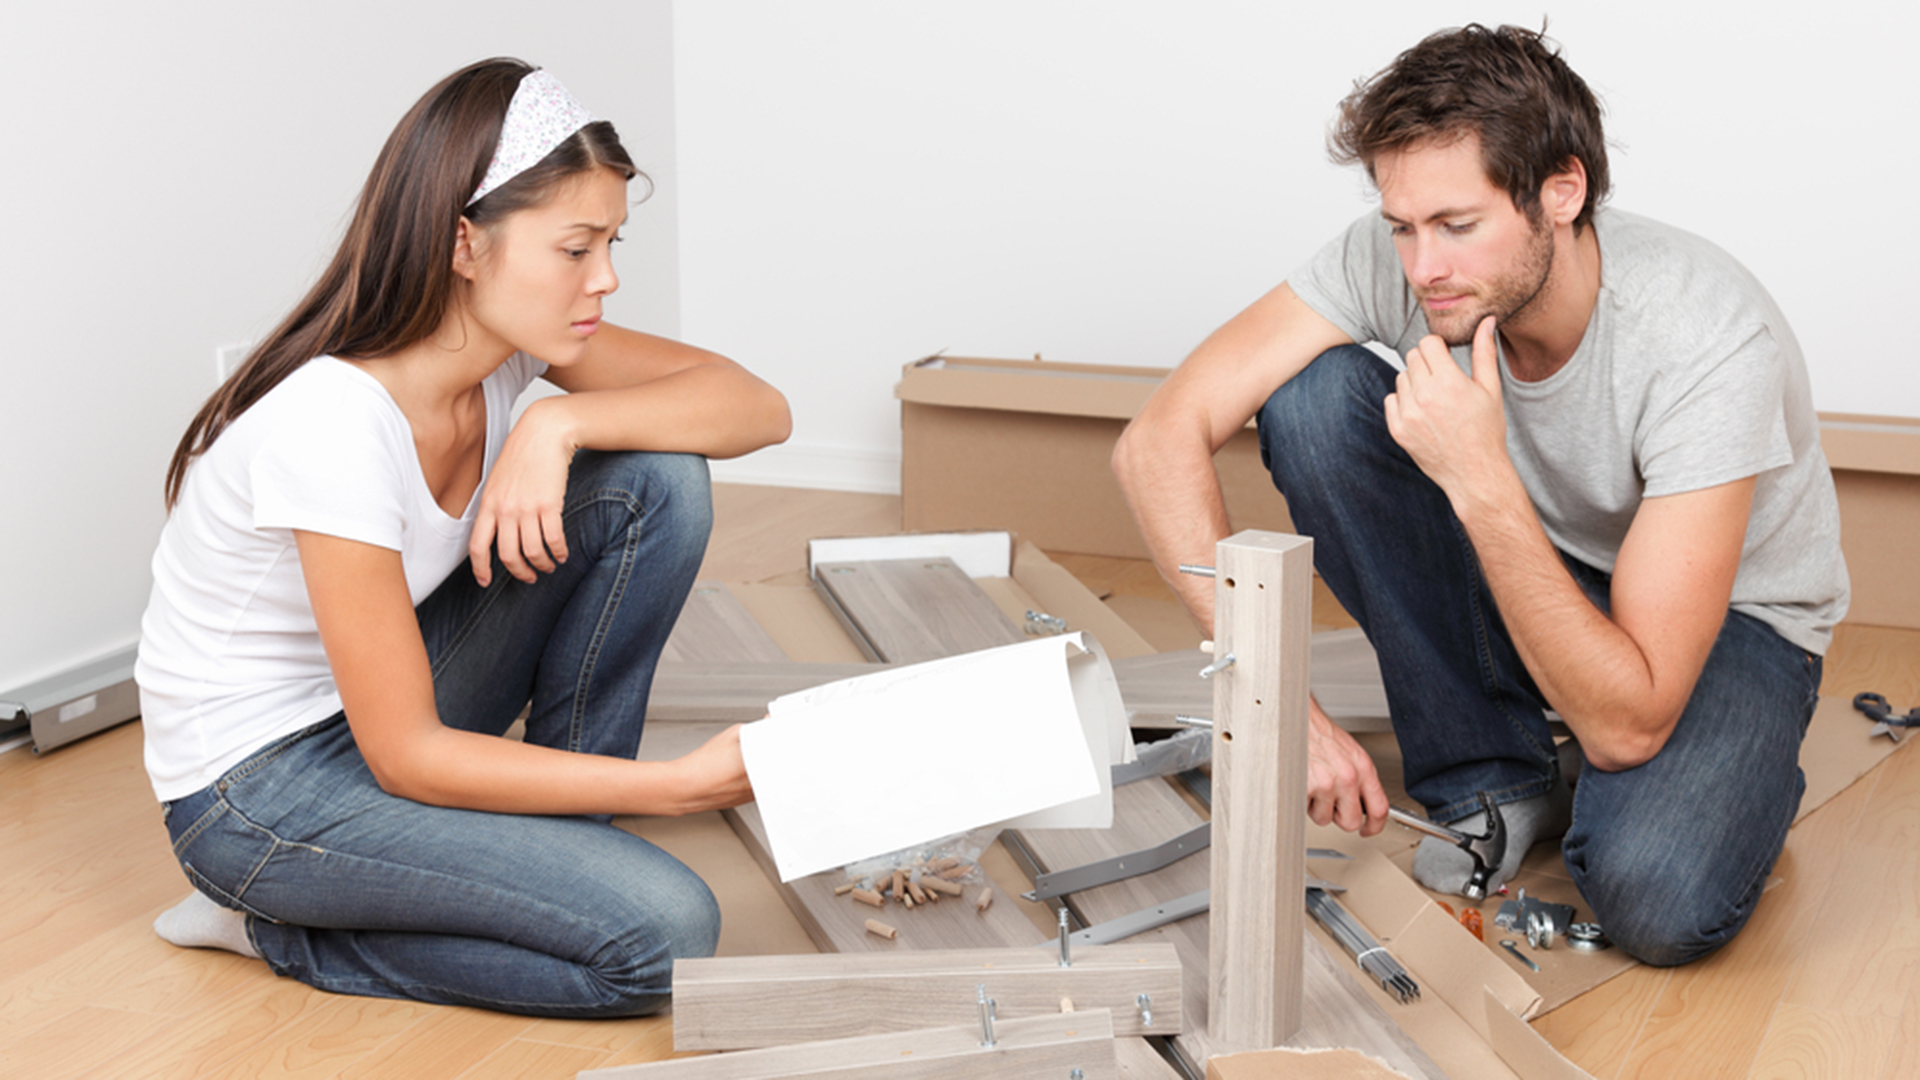 Men or women Who39s better at assembling IKEA furniture TODAYcom. Ikea furniture assembly